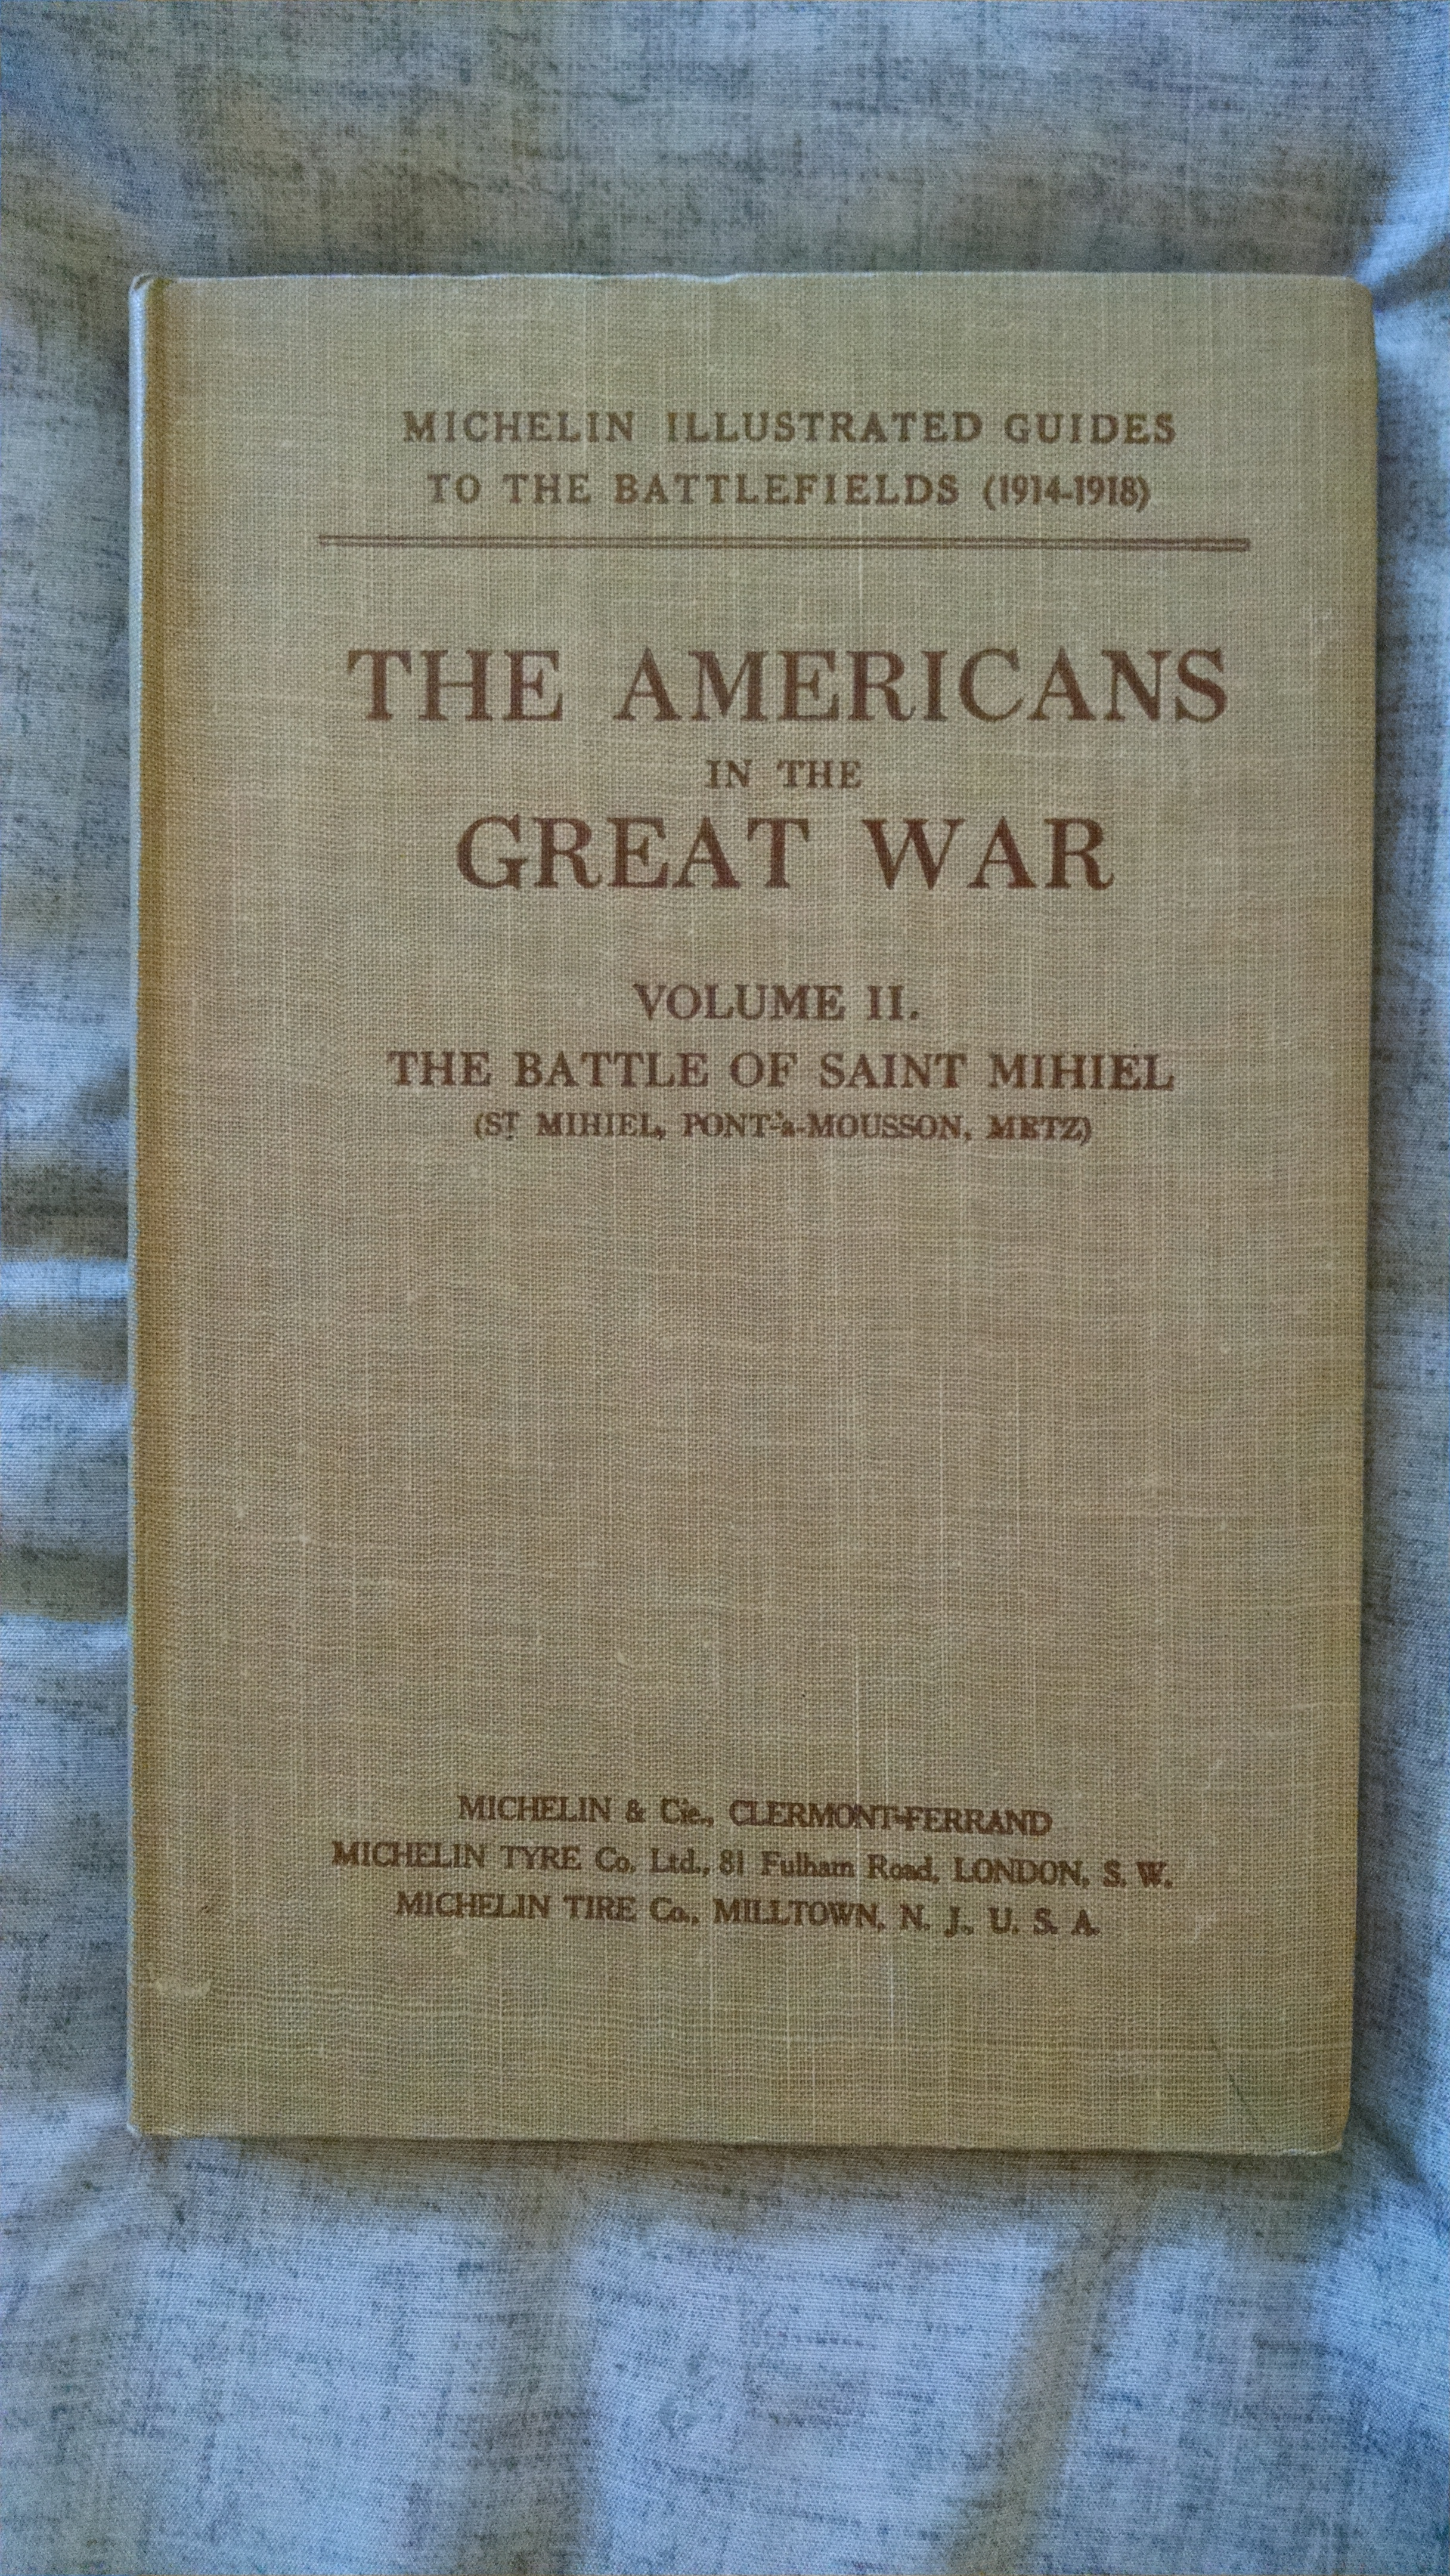 Image for THE AMERICANS IN THE GREAT WAR VOL II THE BATTLE OF SAINT MIHIEL